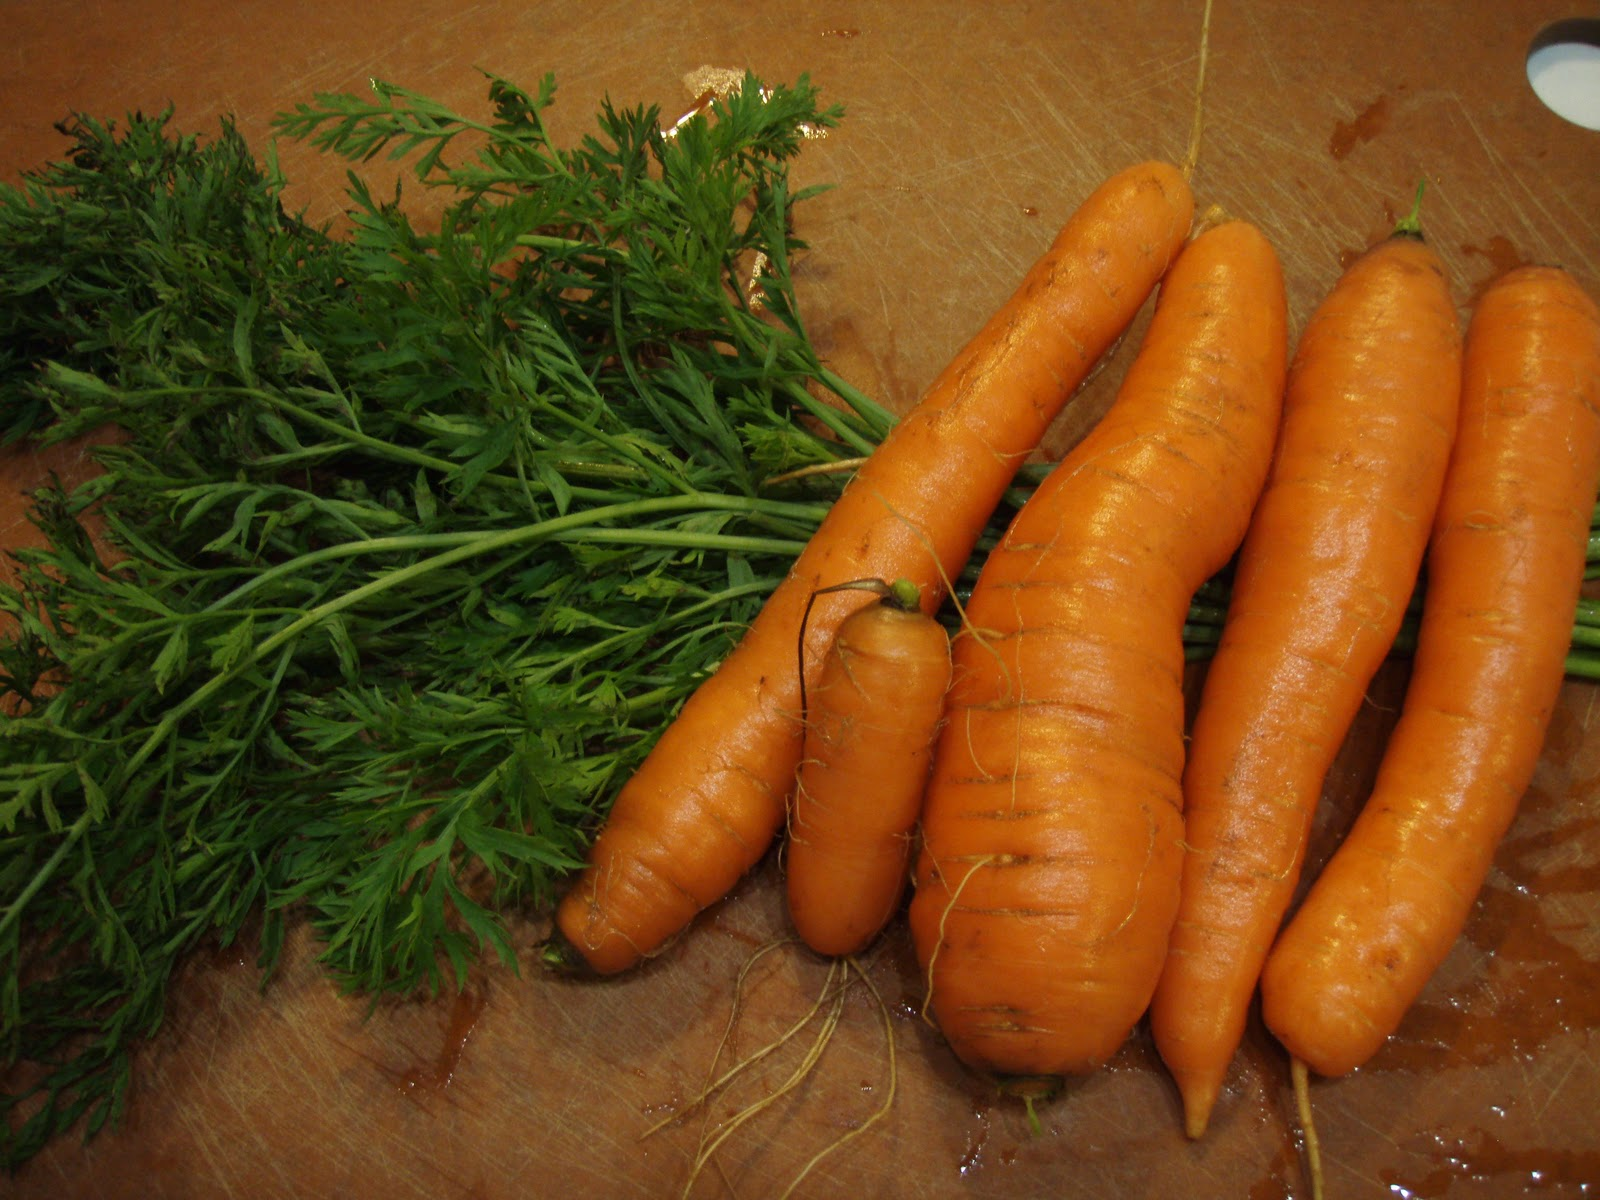 Carrot tops edible nutritional crafts